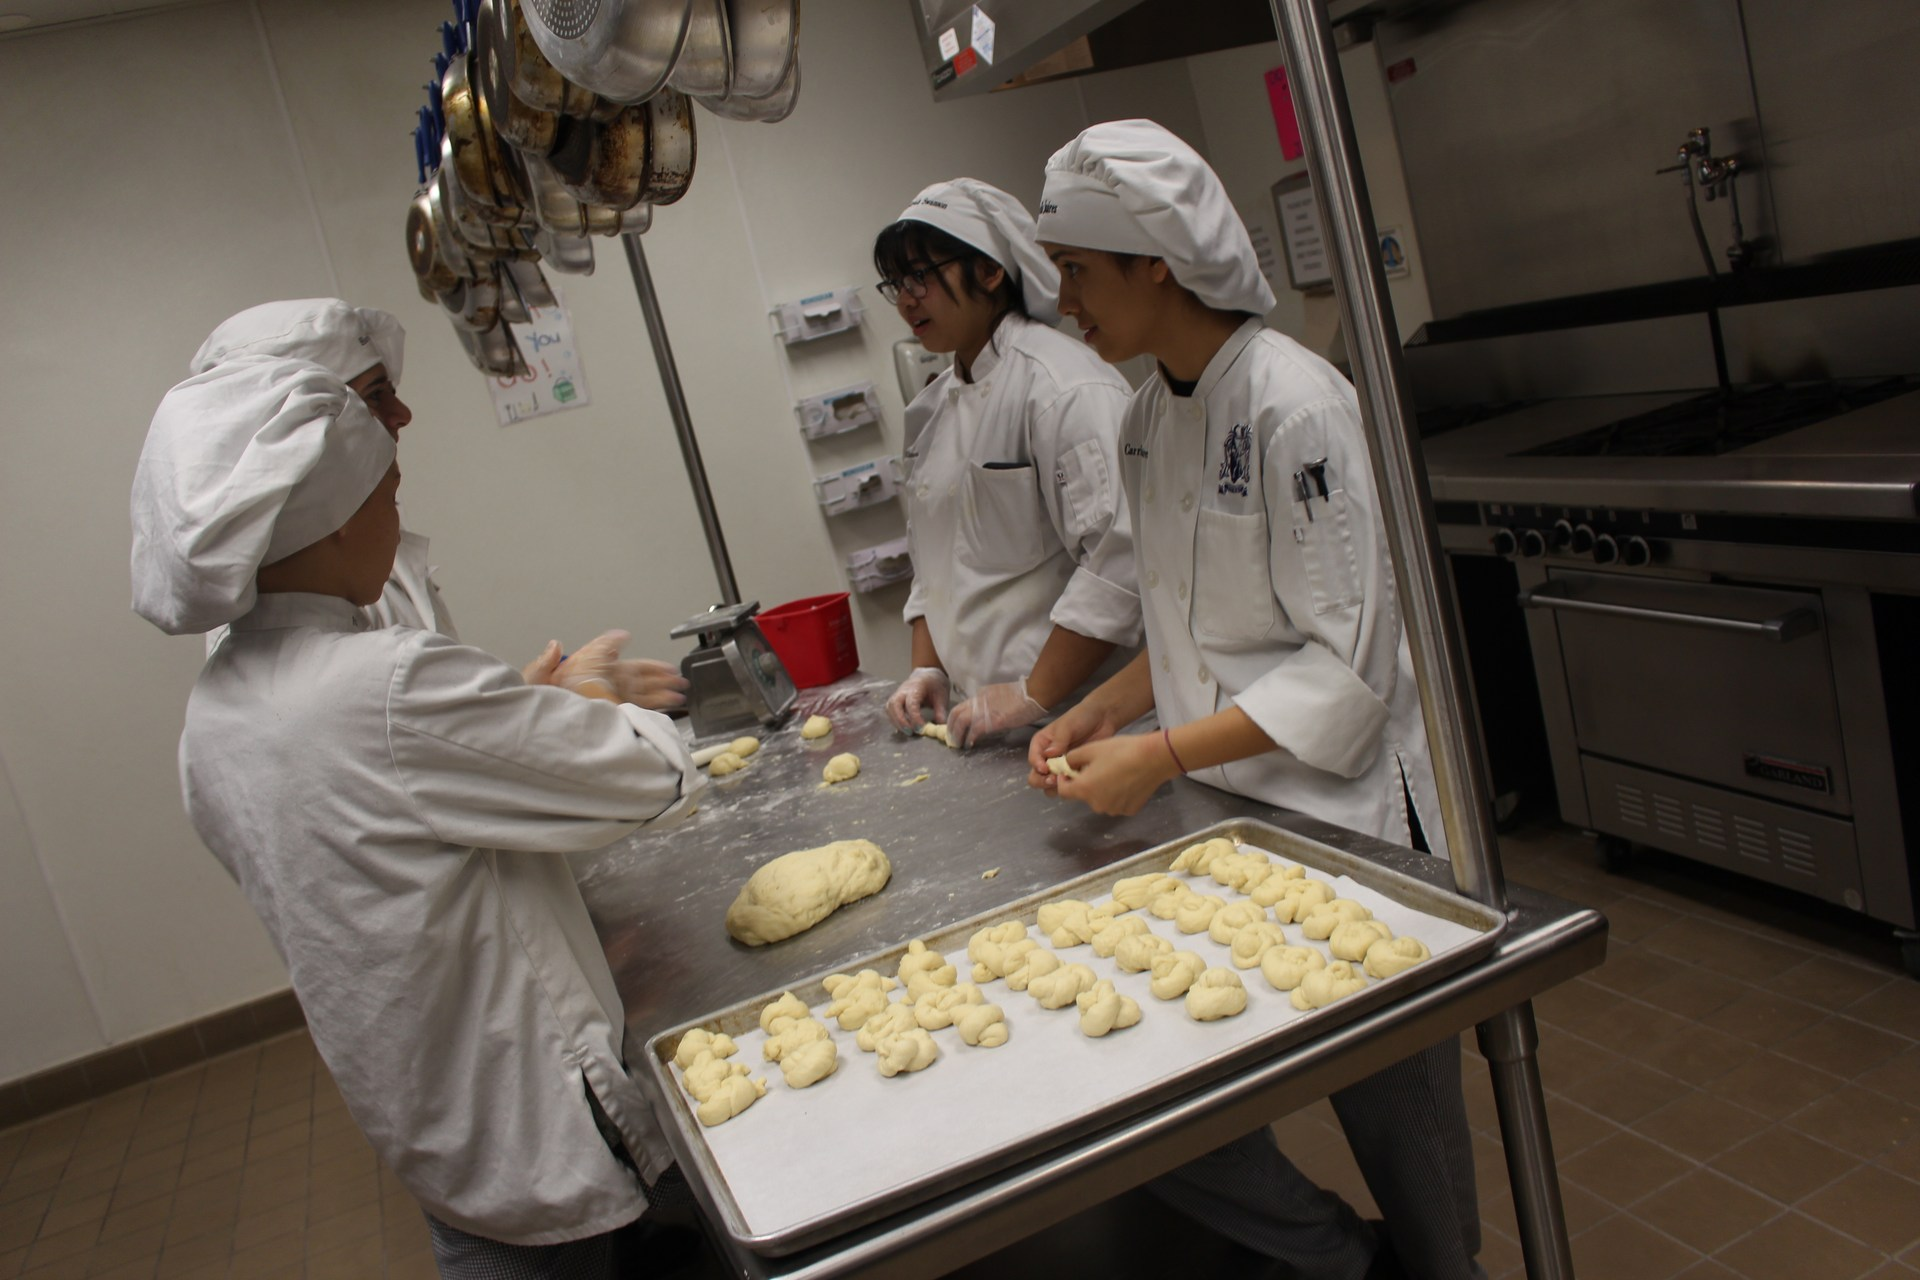 Two students working on making rolls